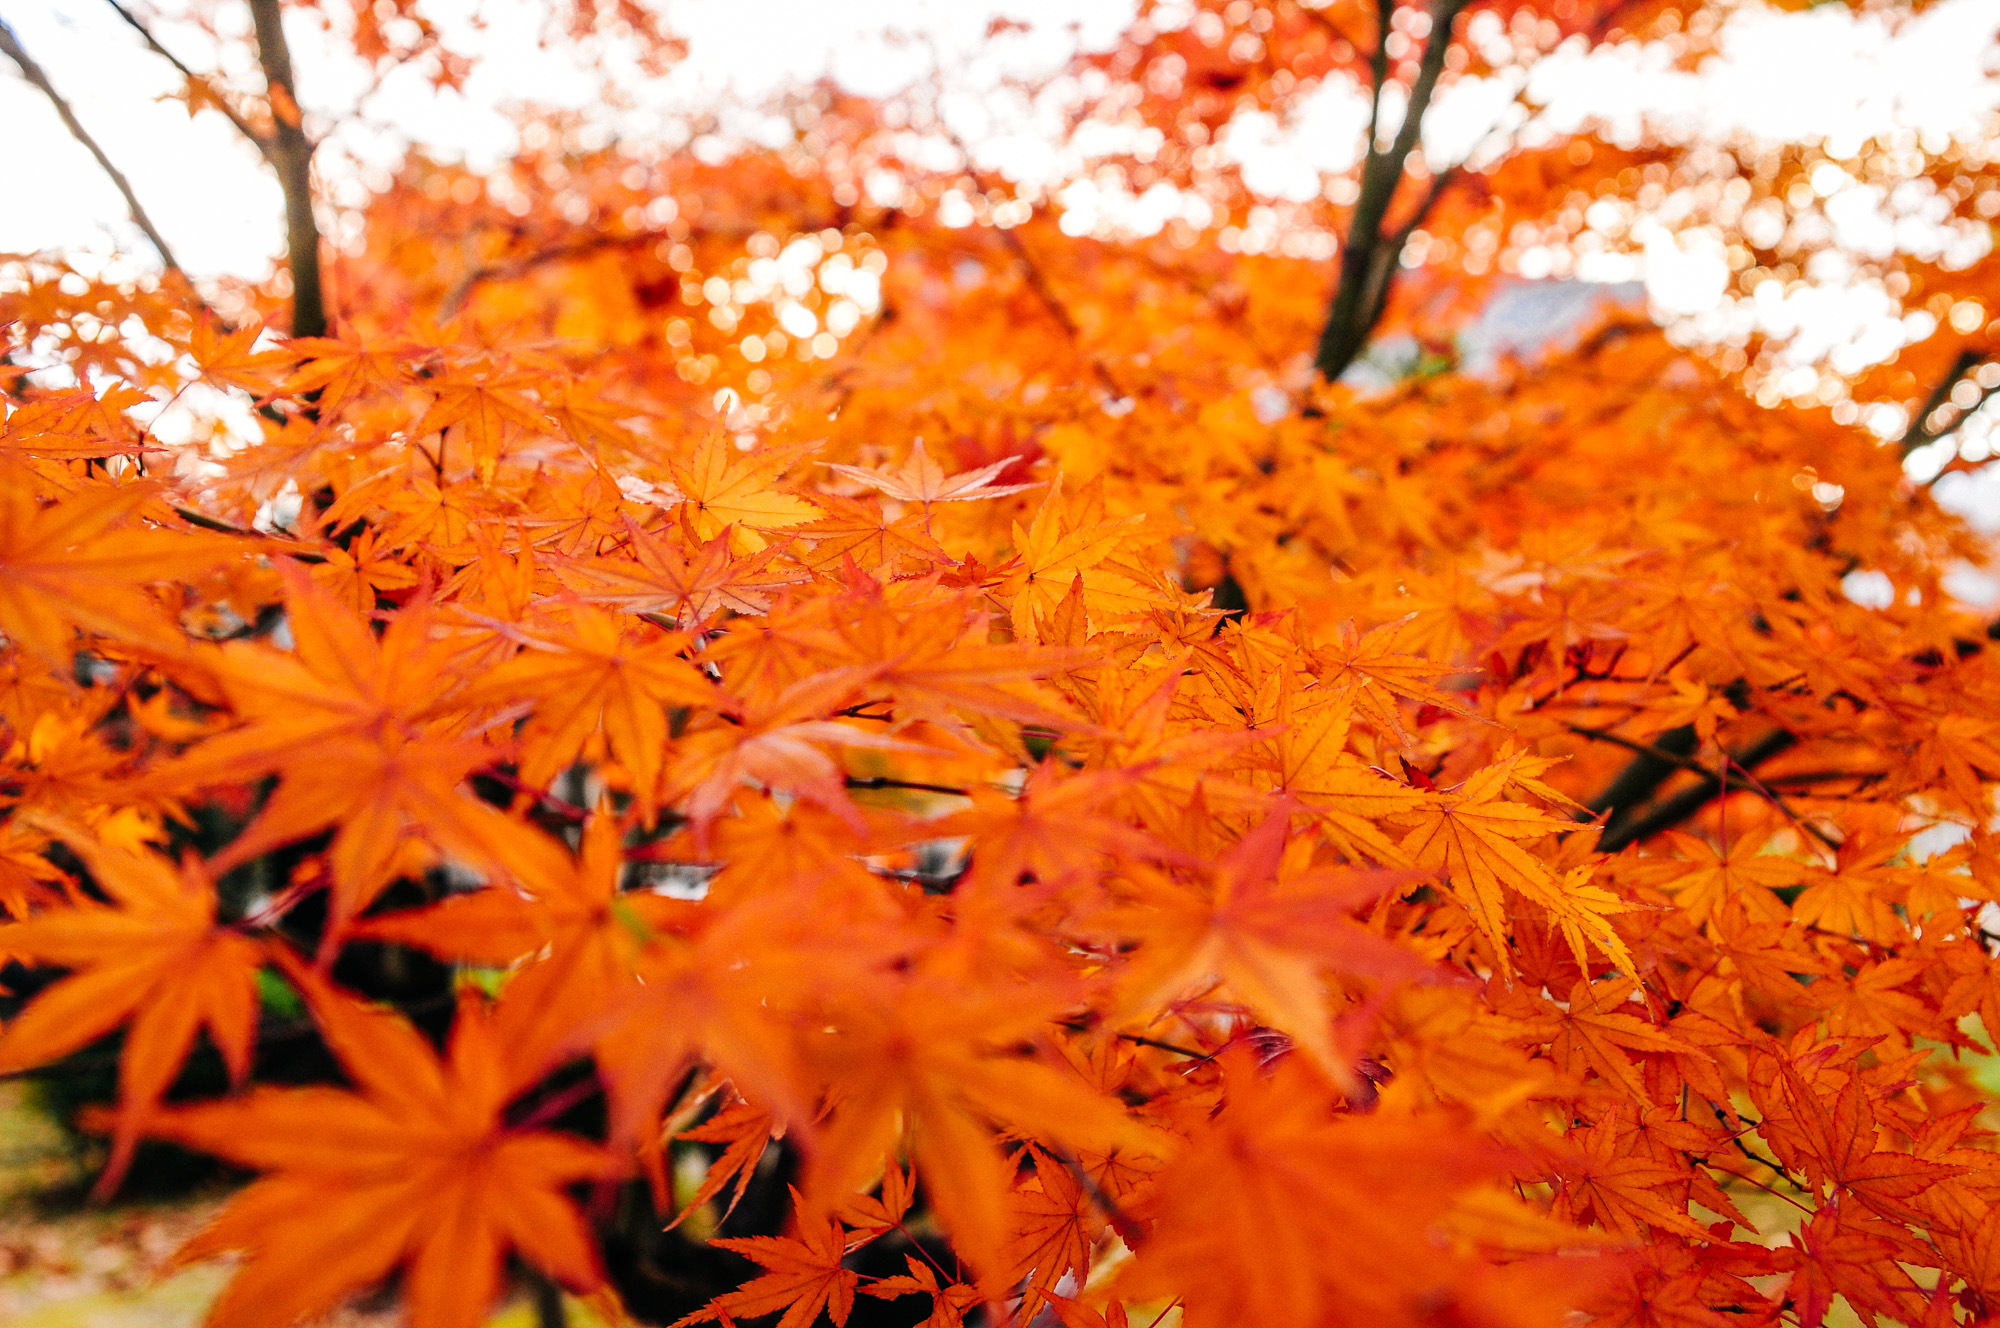 Autumn is just beautiful in Japan. Everything was orange.